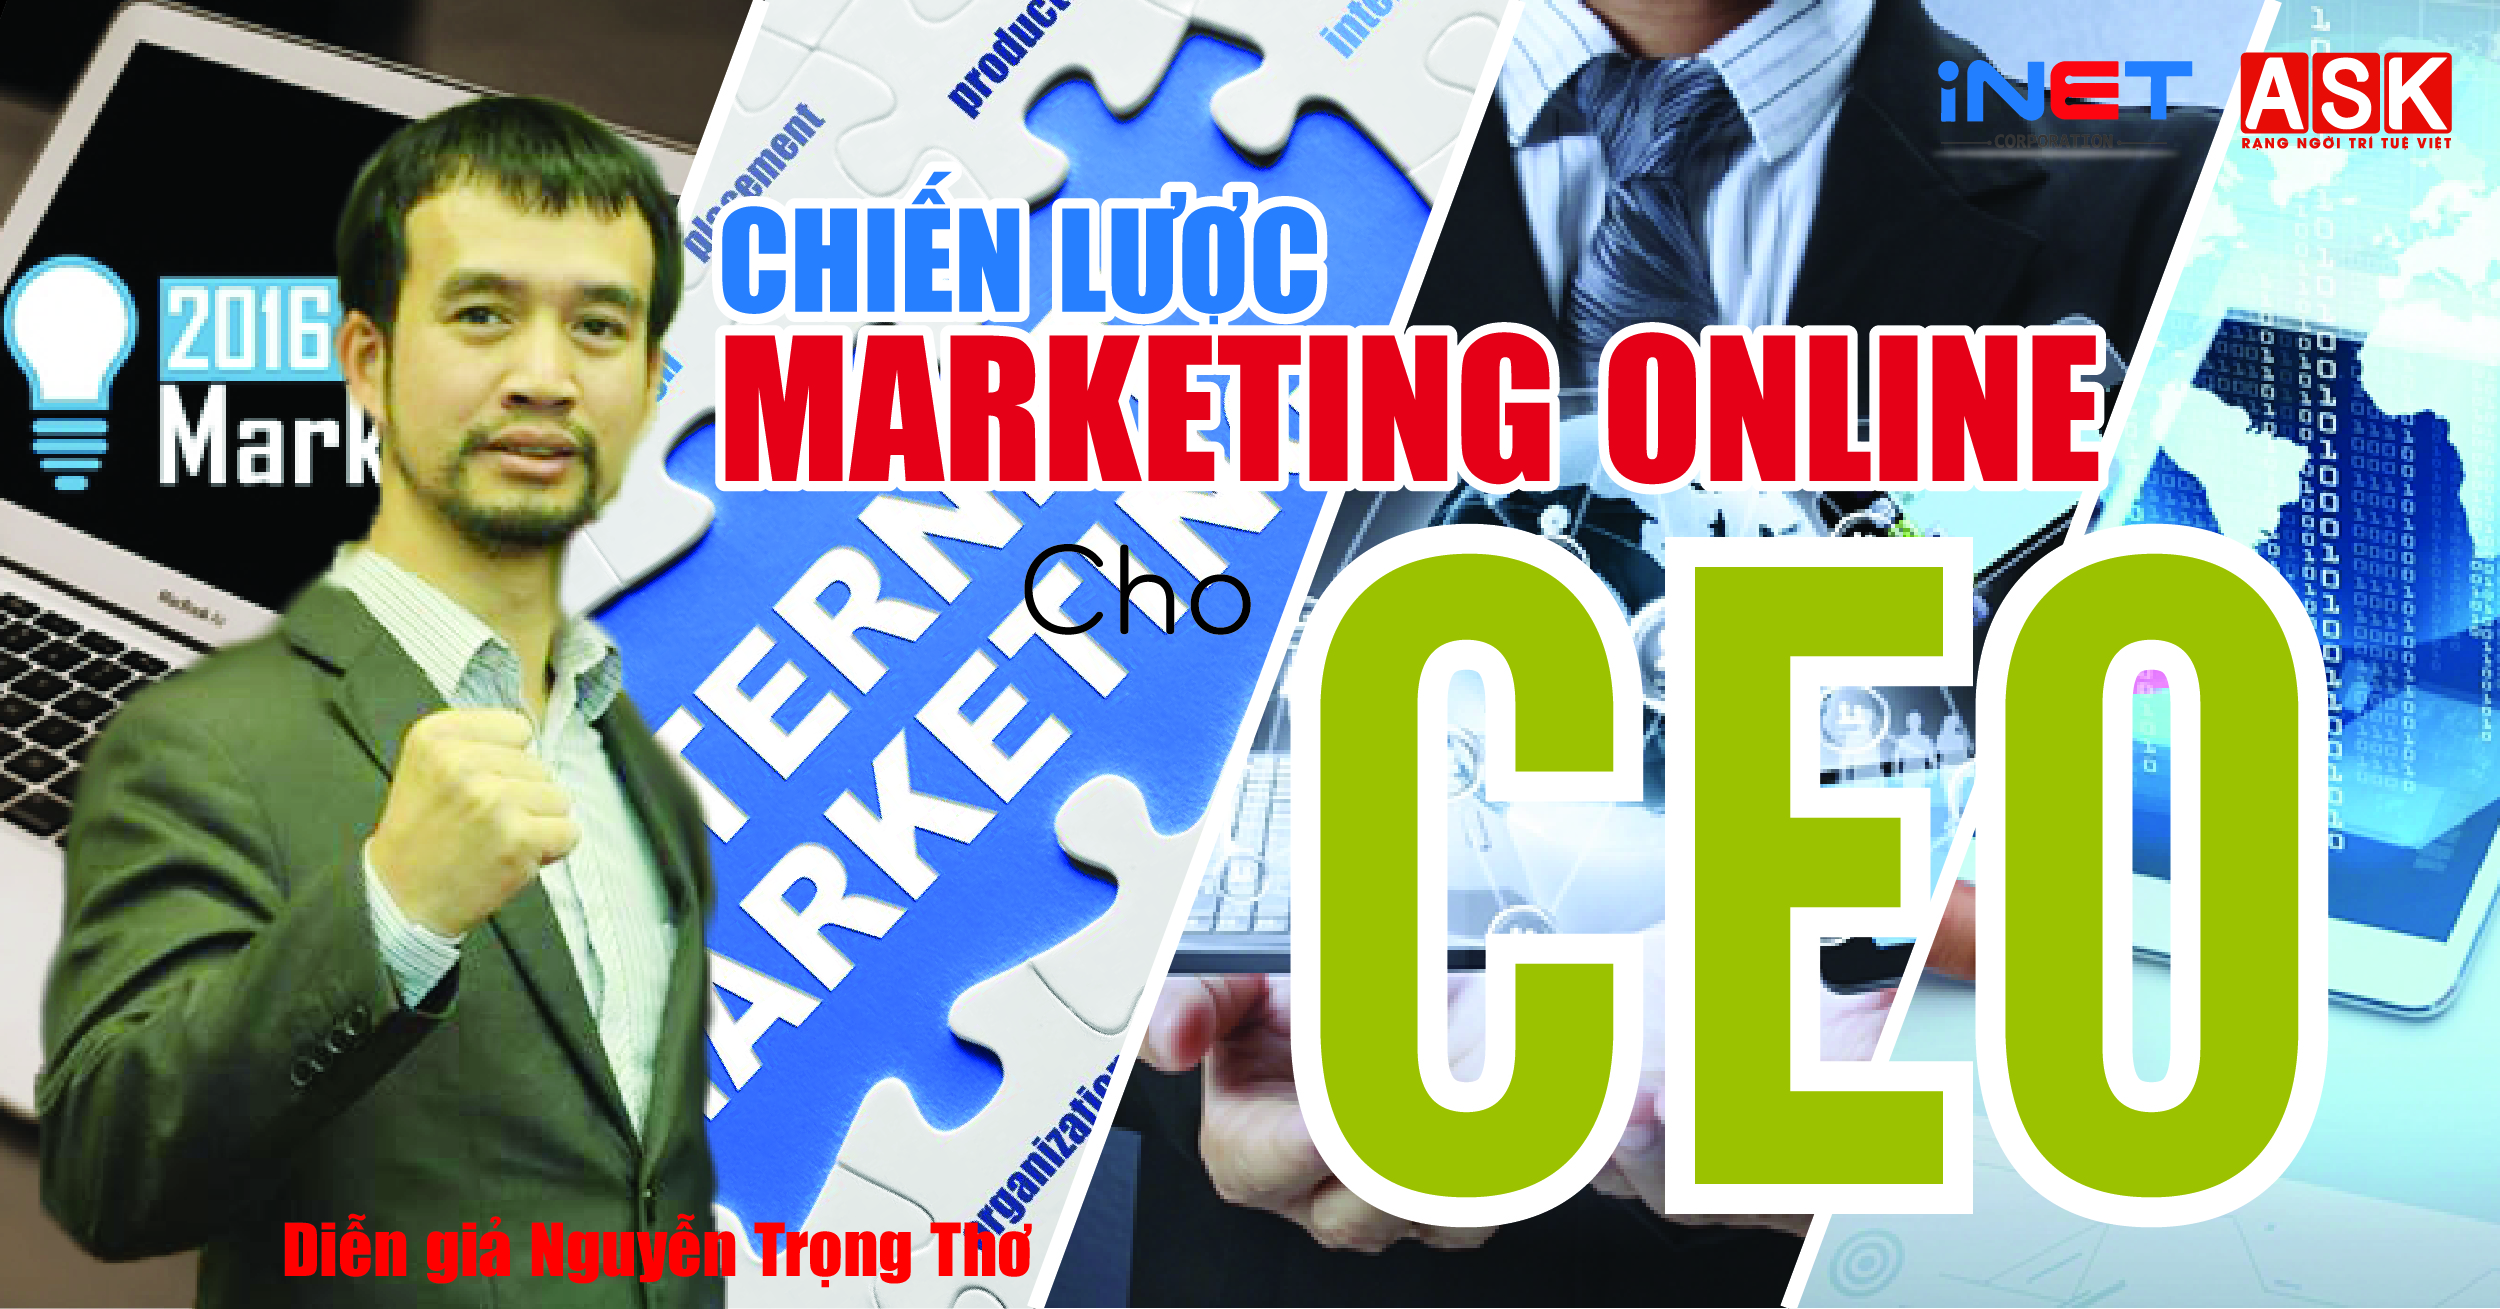 KHÓA HỌC MARKETING ONLINE CHO CEO – 09/04/2017